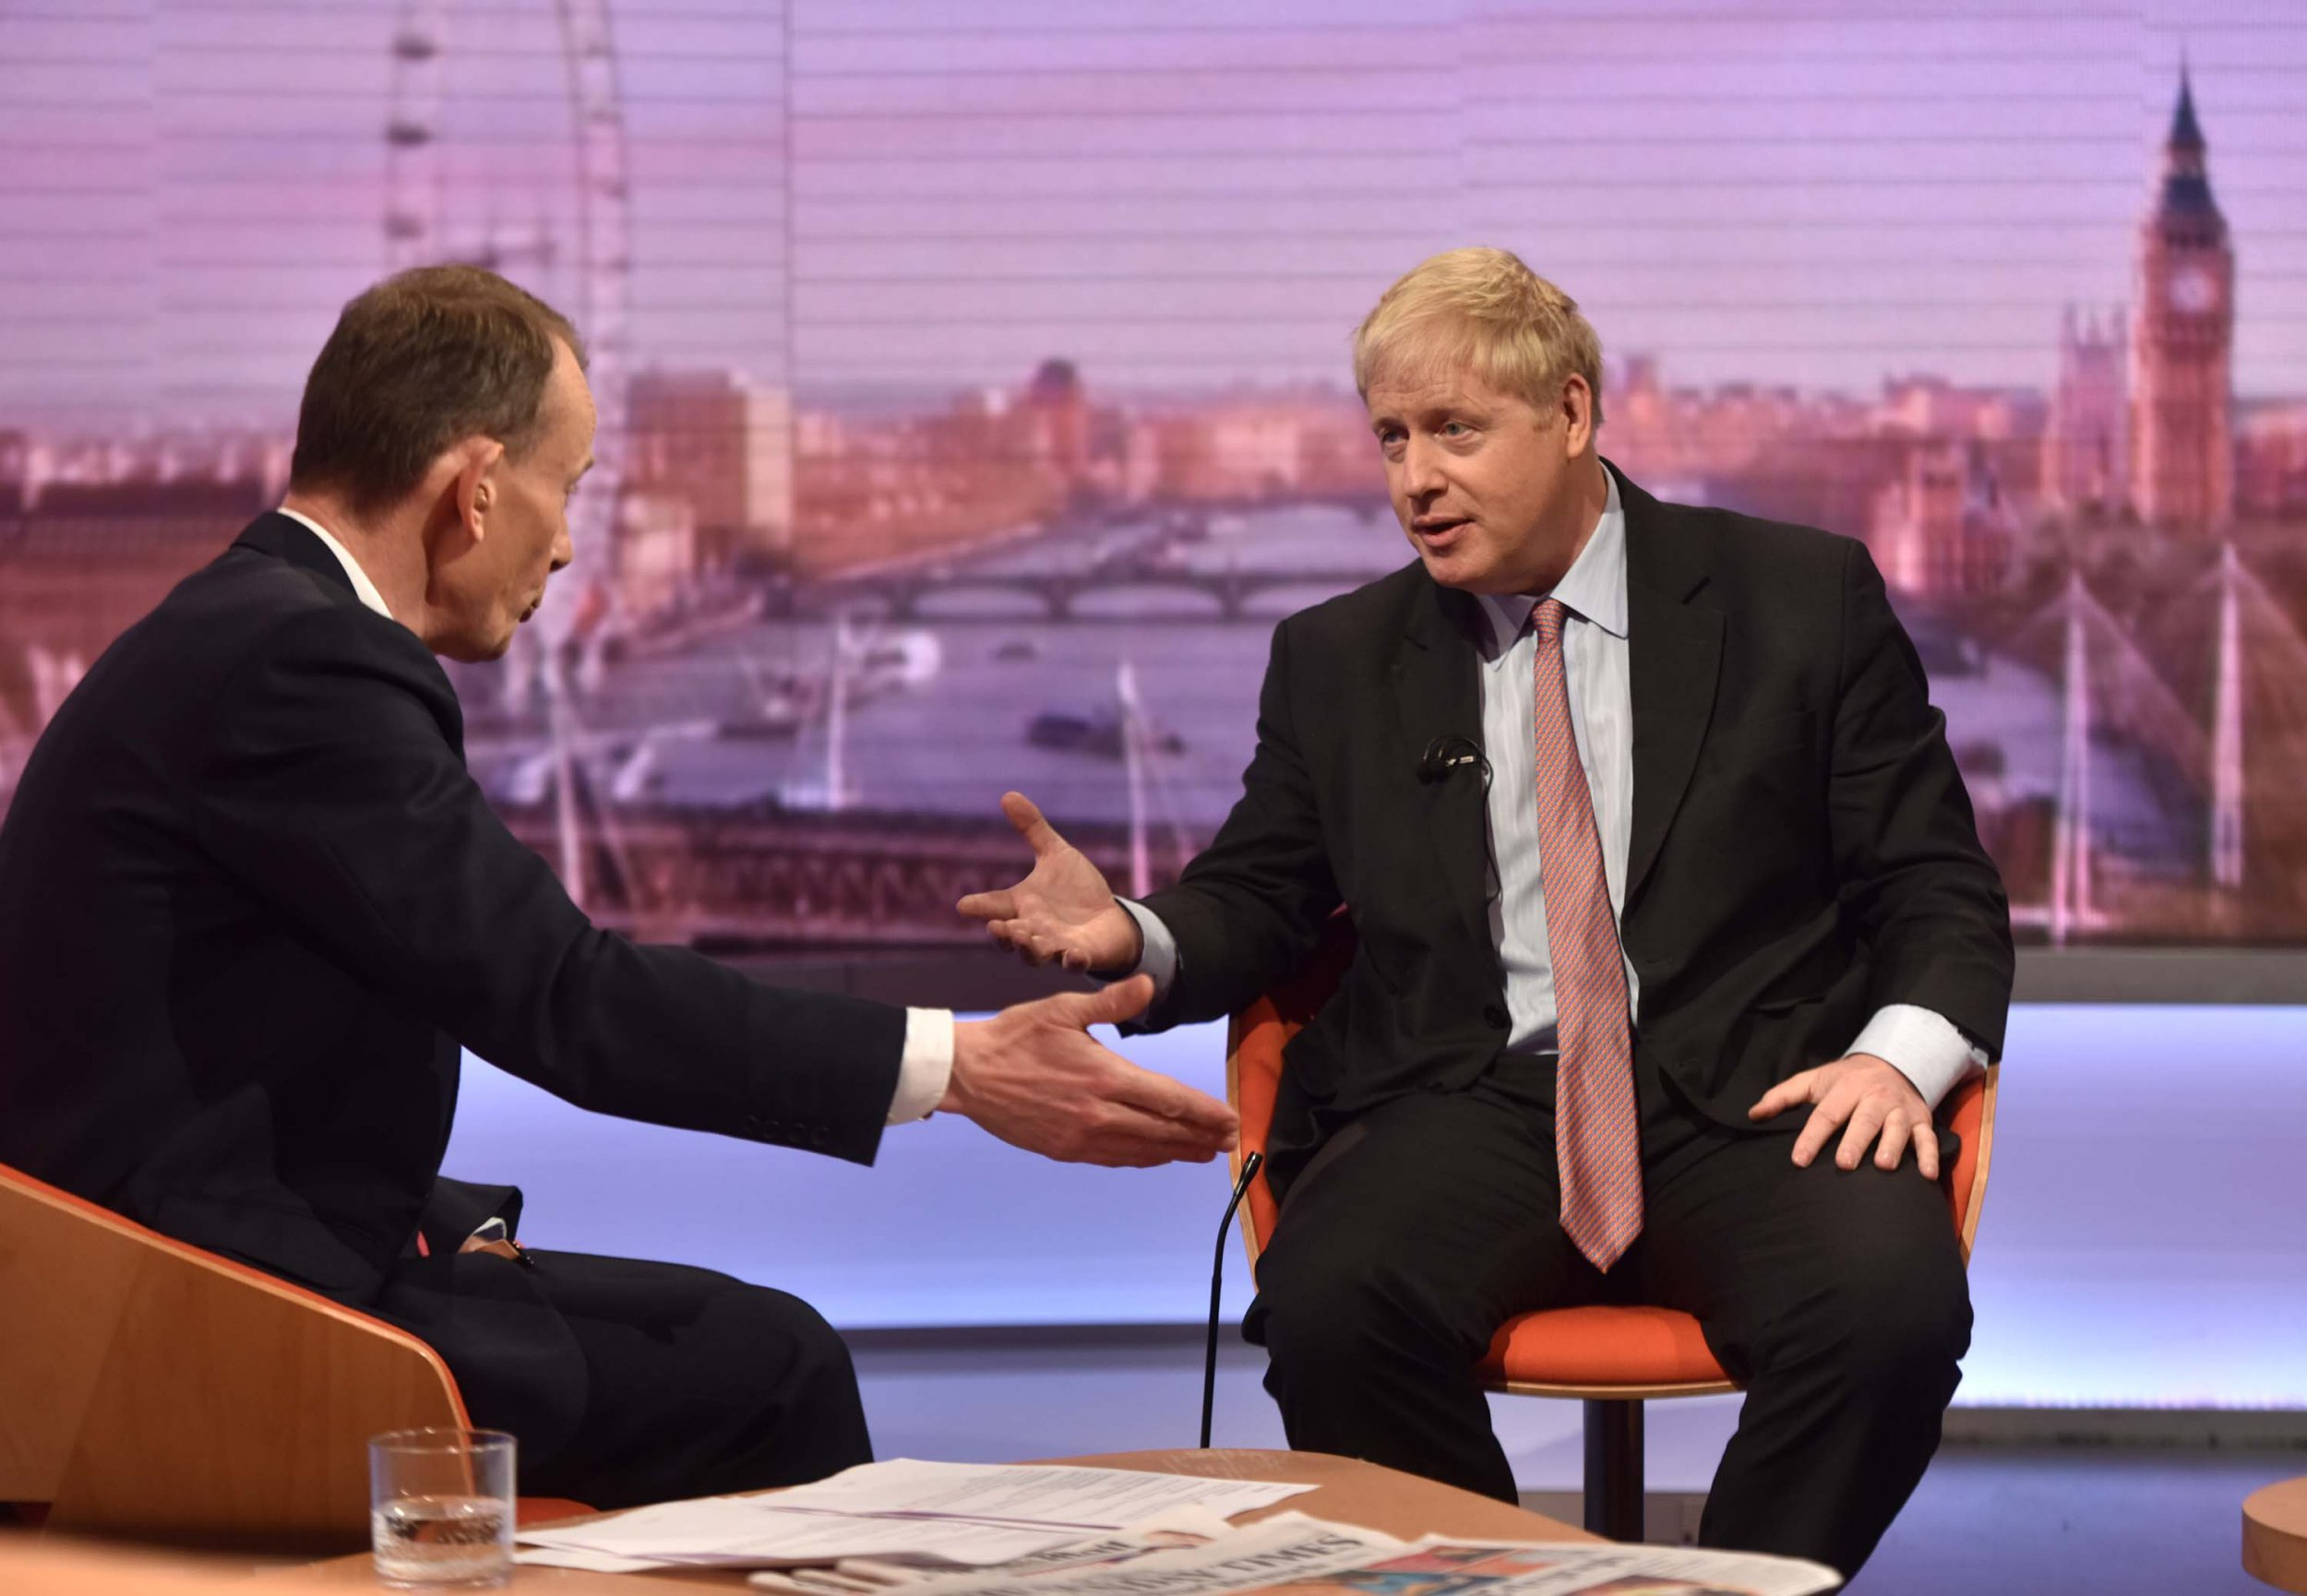 For use in UK, Ireland or Benelux countries only BBC handout photo of Boris Johnson speaking to host Andrew Marr, during the BBC1 current affairs programme, The Andrew Marr Show. PRESS ASSOCIATION Photo. Picture date: Sunday December 09, 2018. See PA story POLITICS Brexit. Photo credit should read: Jeff Overs/BBC/PA Wire NOTE TO EDITORS: Not for use more than 21 days after issue. You may use this picture without charge only for the purpose of publicising or reporting on current BBC programming, personnel or other BBC output or activity within 21 days of issue. Any use after that time MUST be cleared through BBC Picture Publicity. Please credit the image to the BBC and any named photographer or independent programme maker, as described in the caption.